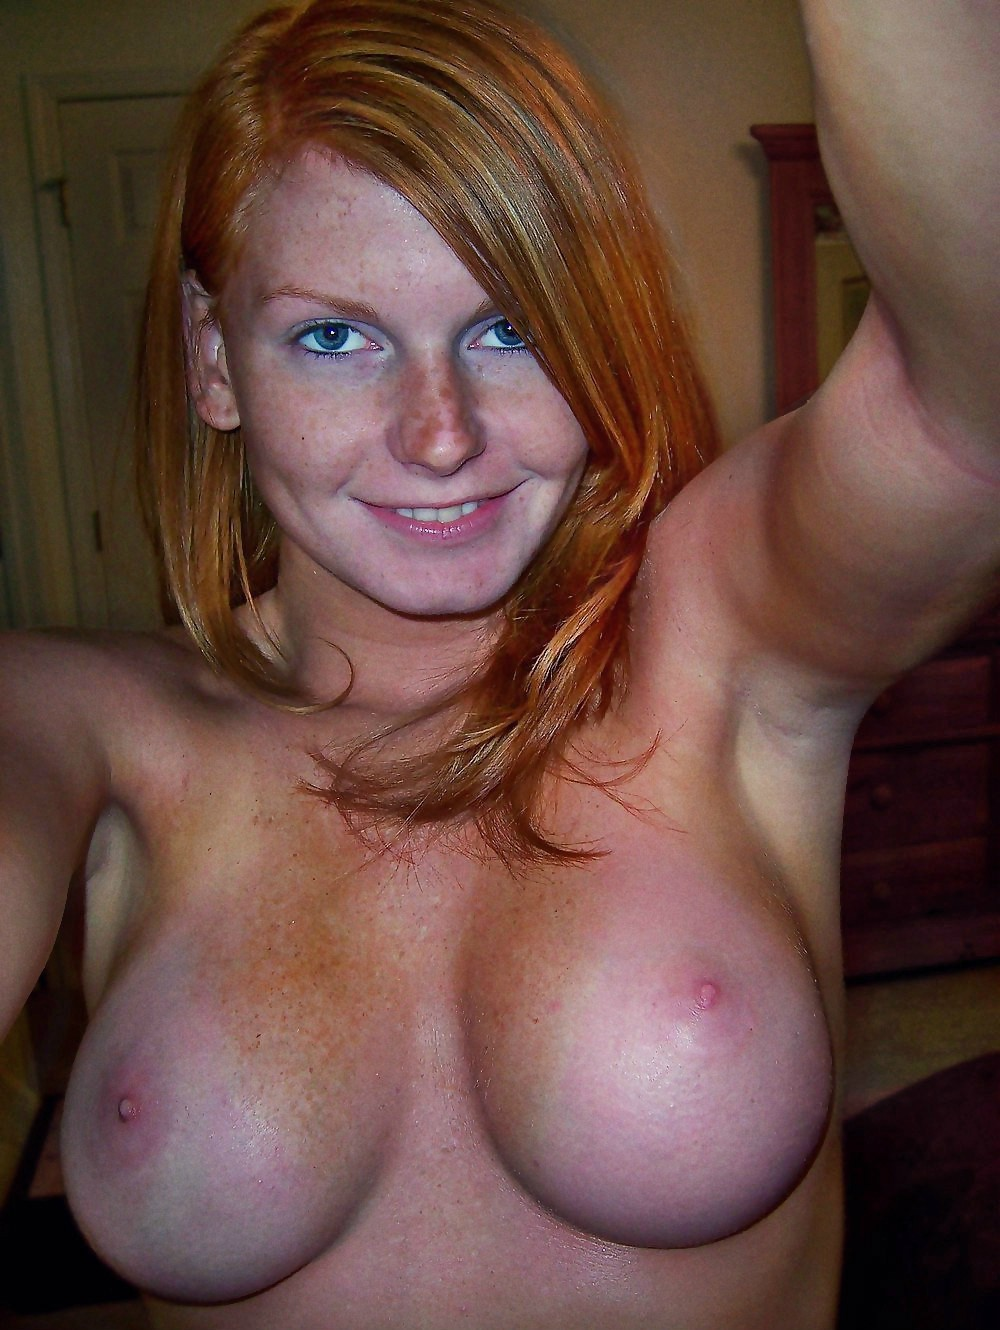 With girls nude freckles redhead cute